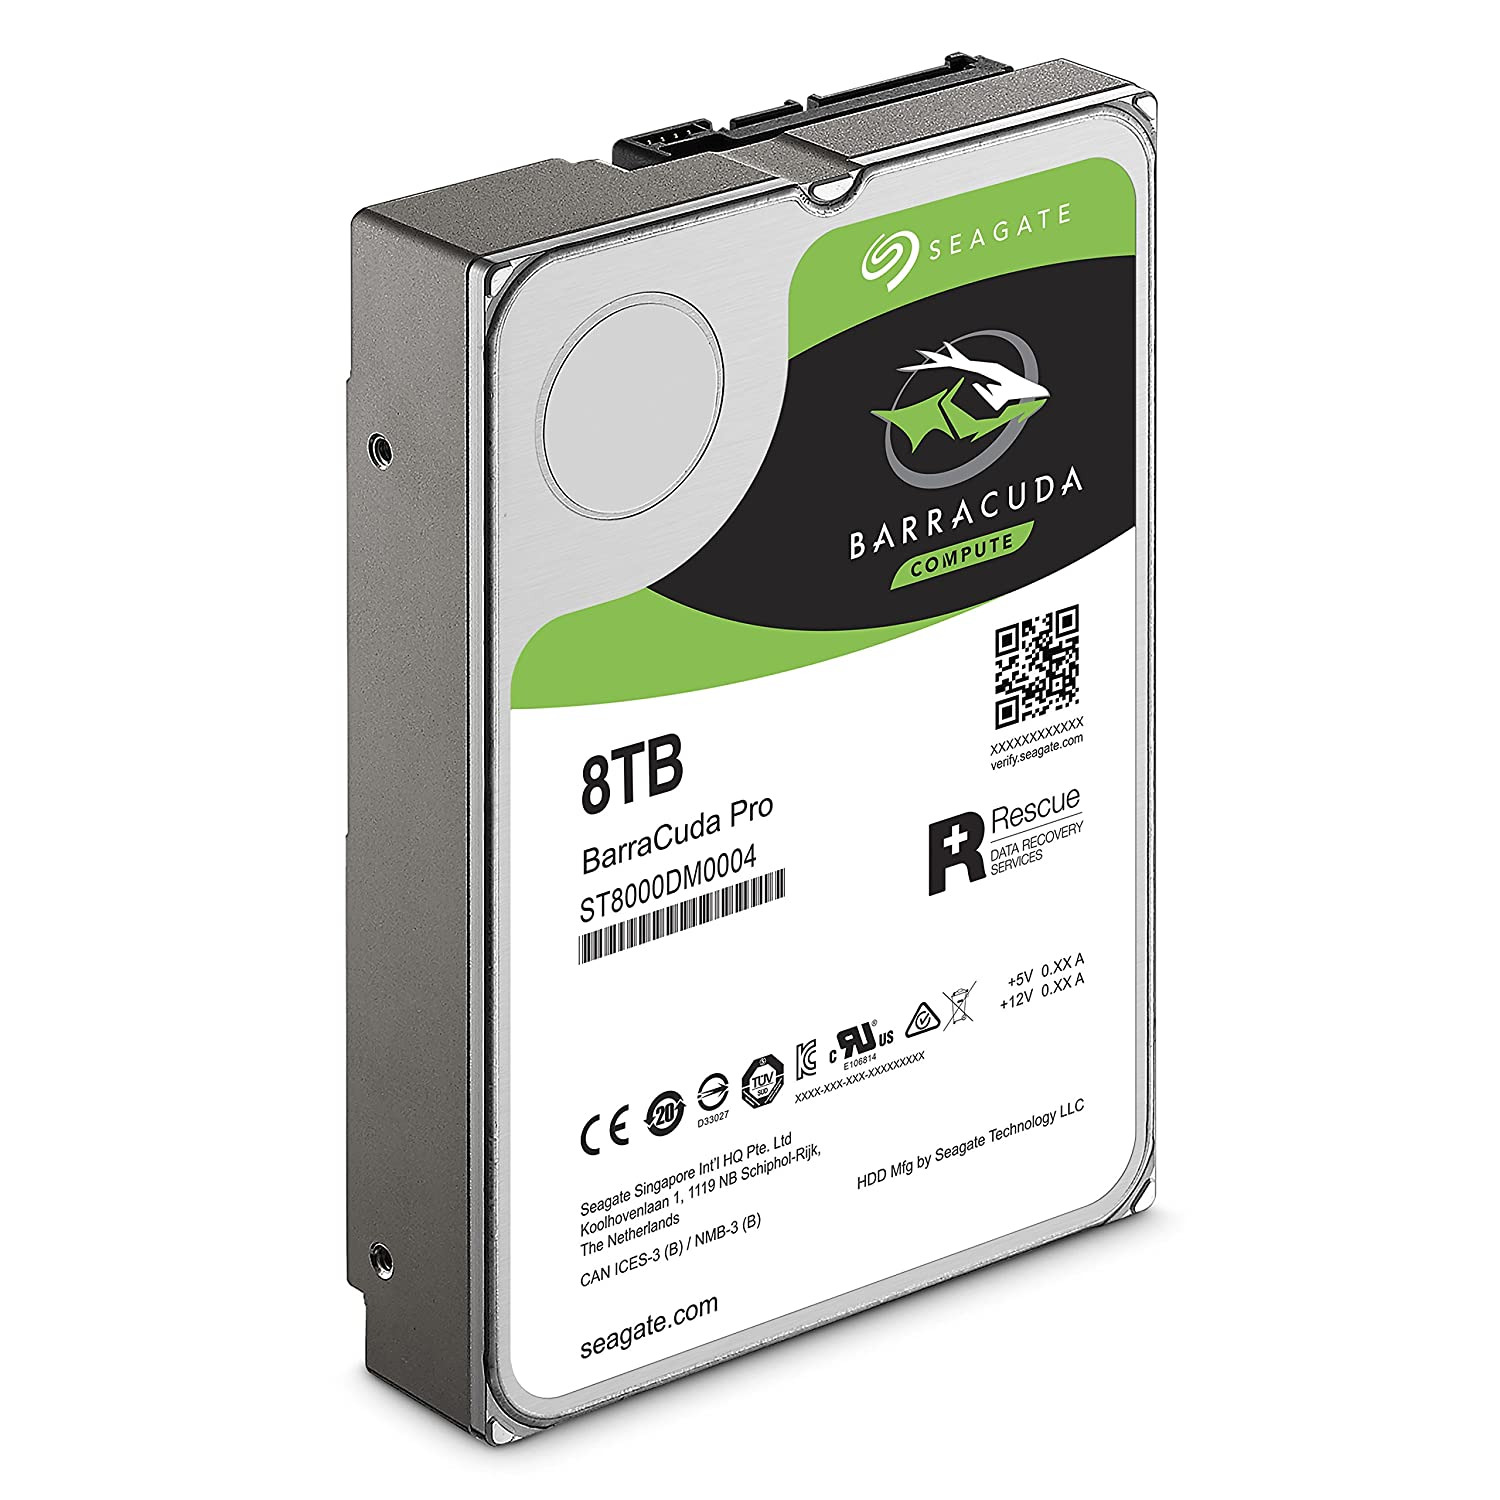 Seagate Barracuda Pro Sata Hdd 12tb 7200rpm 6gb S 256mb To Make It More Fun We Going Tear Pieces Pretty New 1tb Cache 35 Inch Internal Hard Drive For Pc Desktop Computers System All In One Home